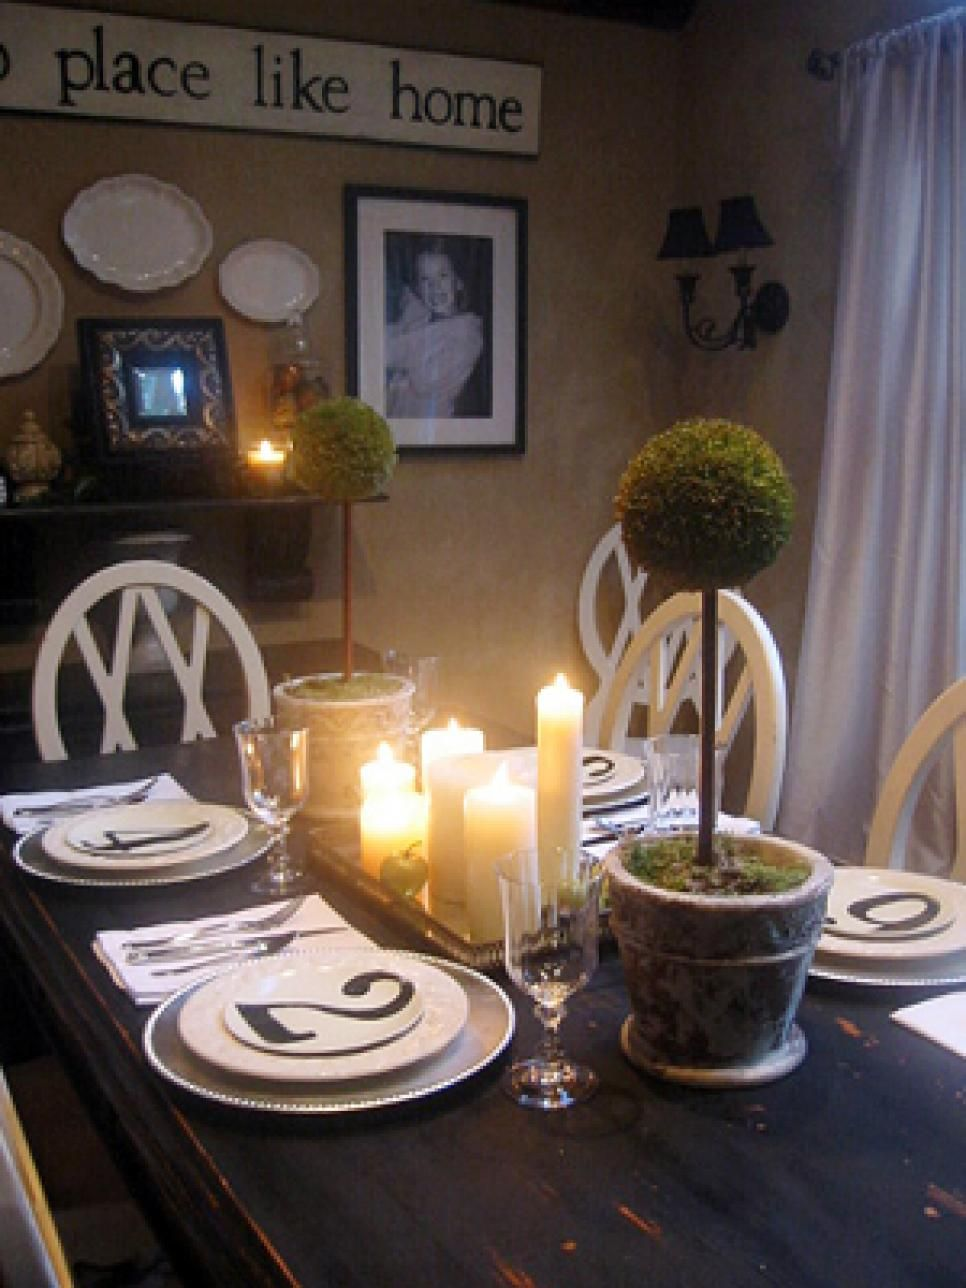 Check Out These Stylish Yet Inexpensive Spaces From Fellow Rate My Space Users